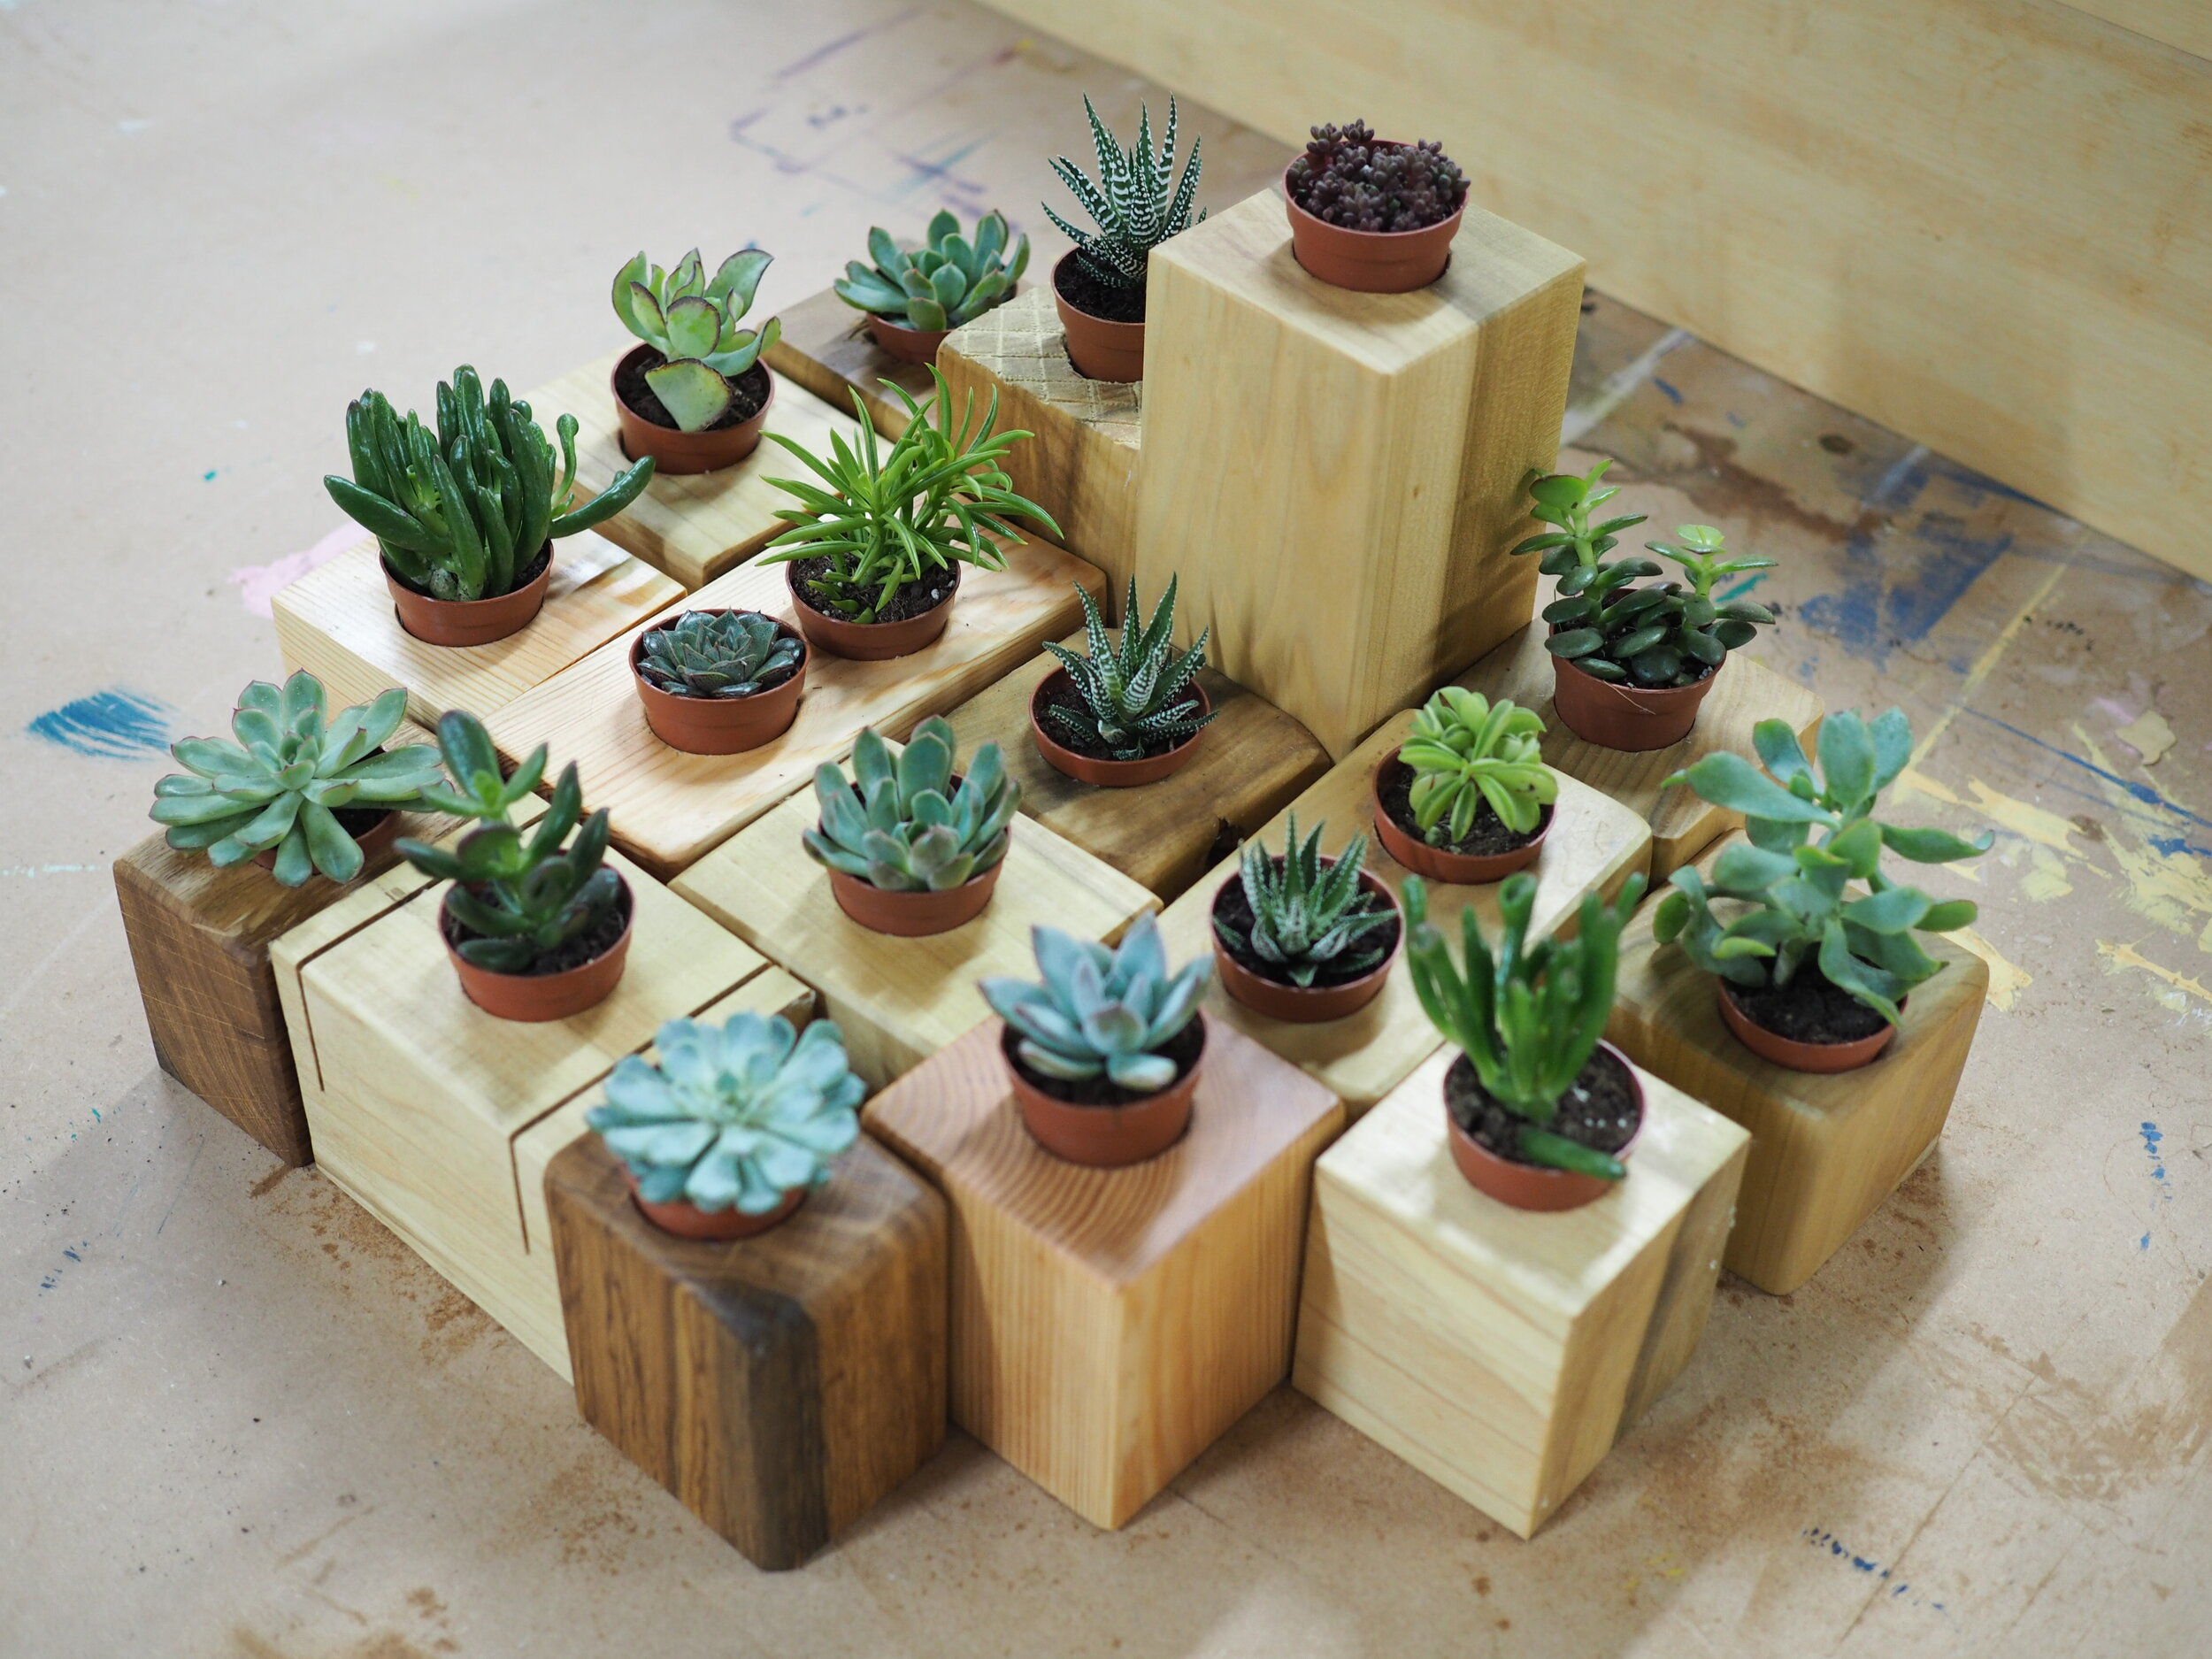 Make Your Own Mini Desk Planter.JPG